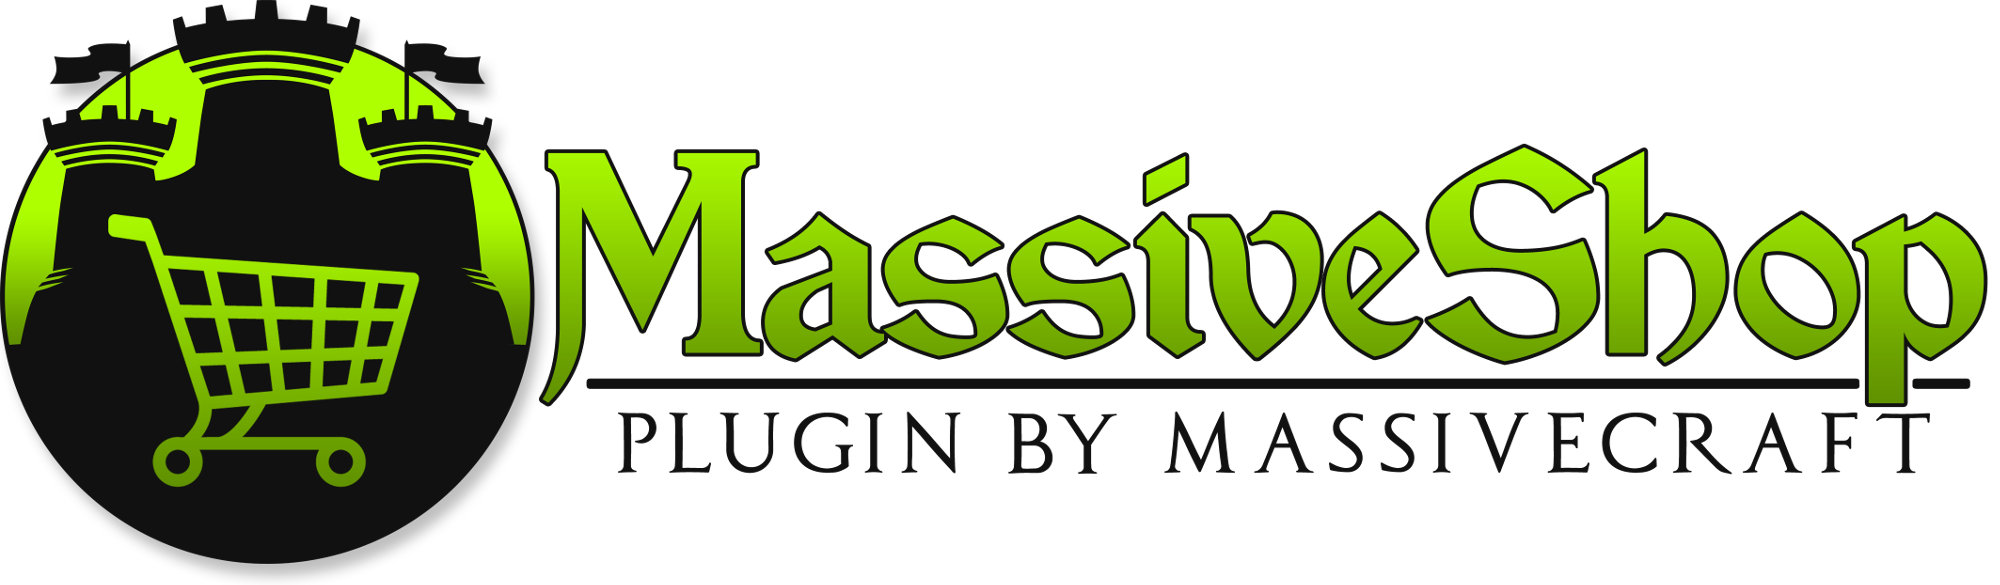 massivecraft-logotype-plugin-massiveshop-2000